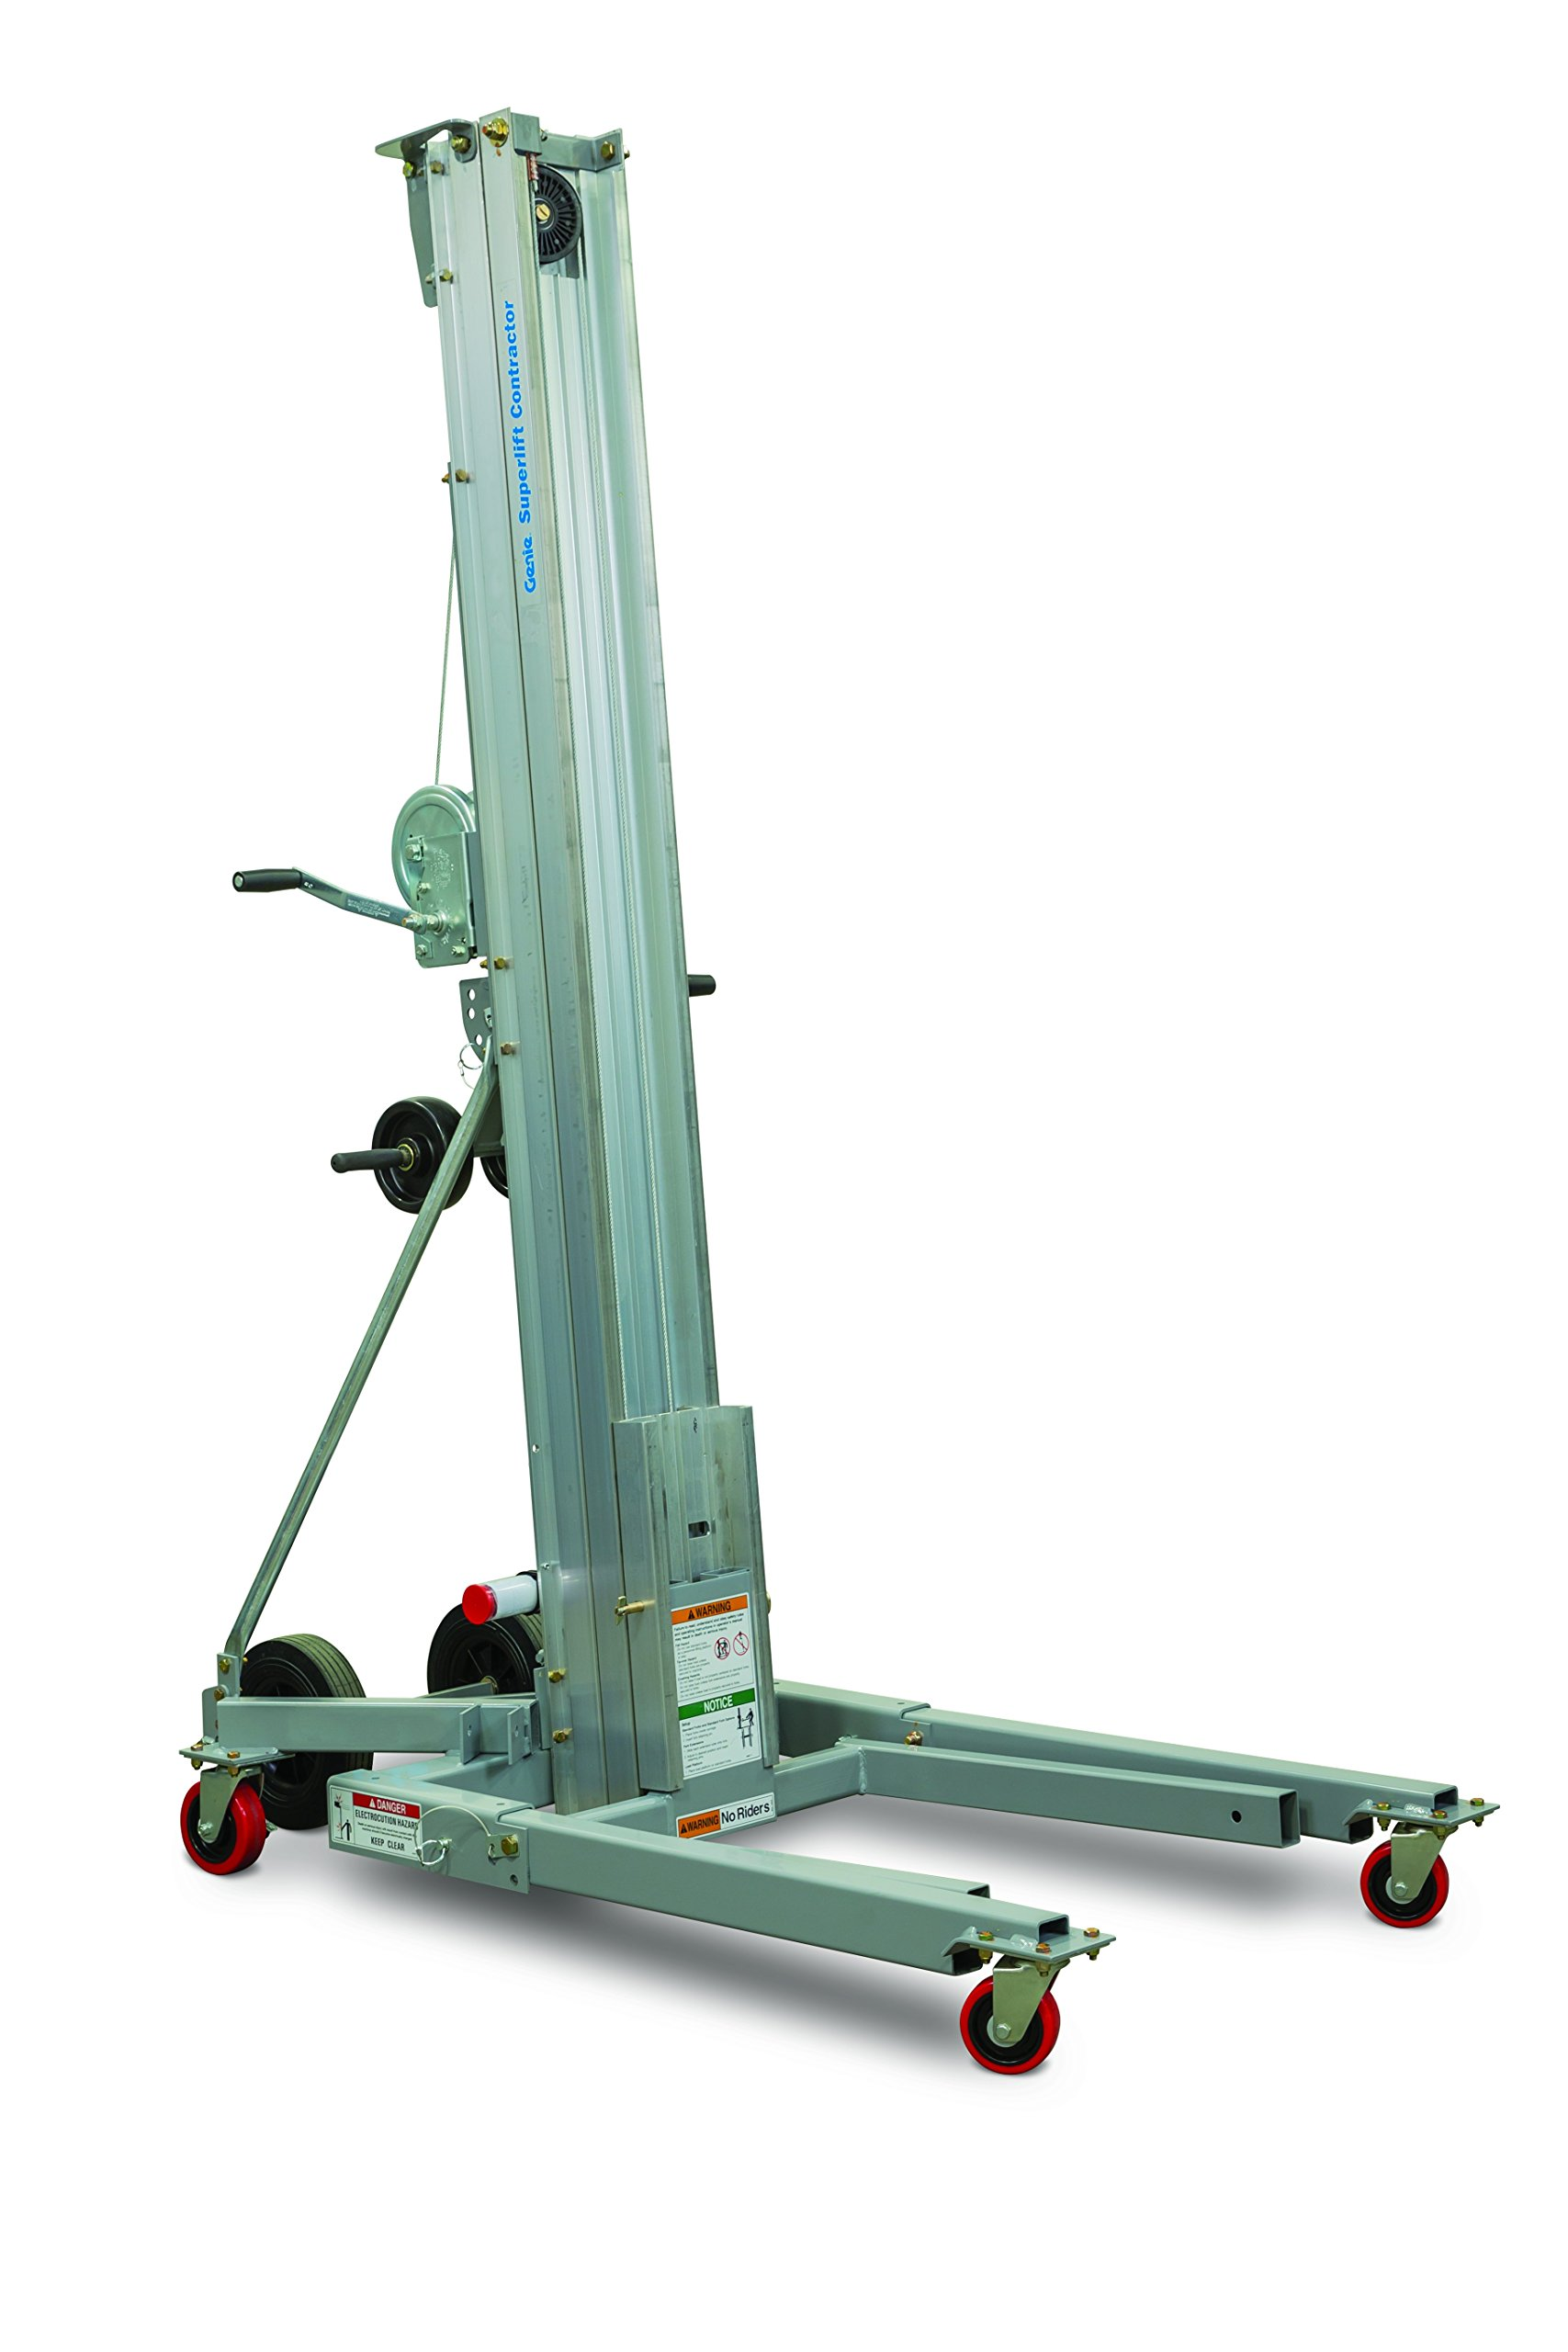 Genie Superlift Contractor, SLC- 12, 650 lbs Load